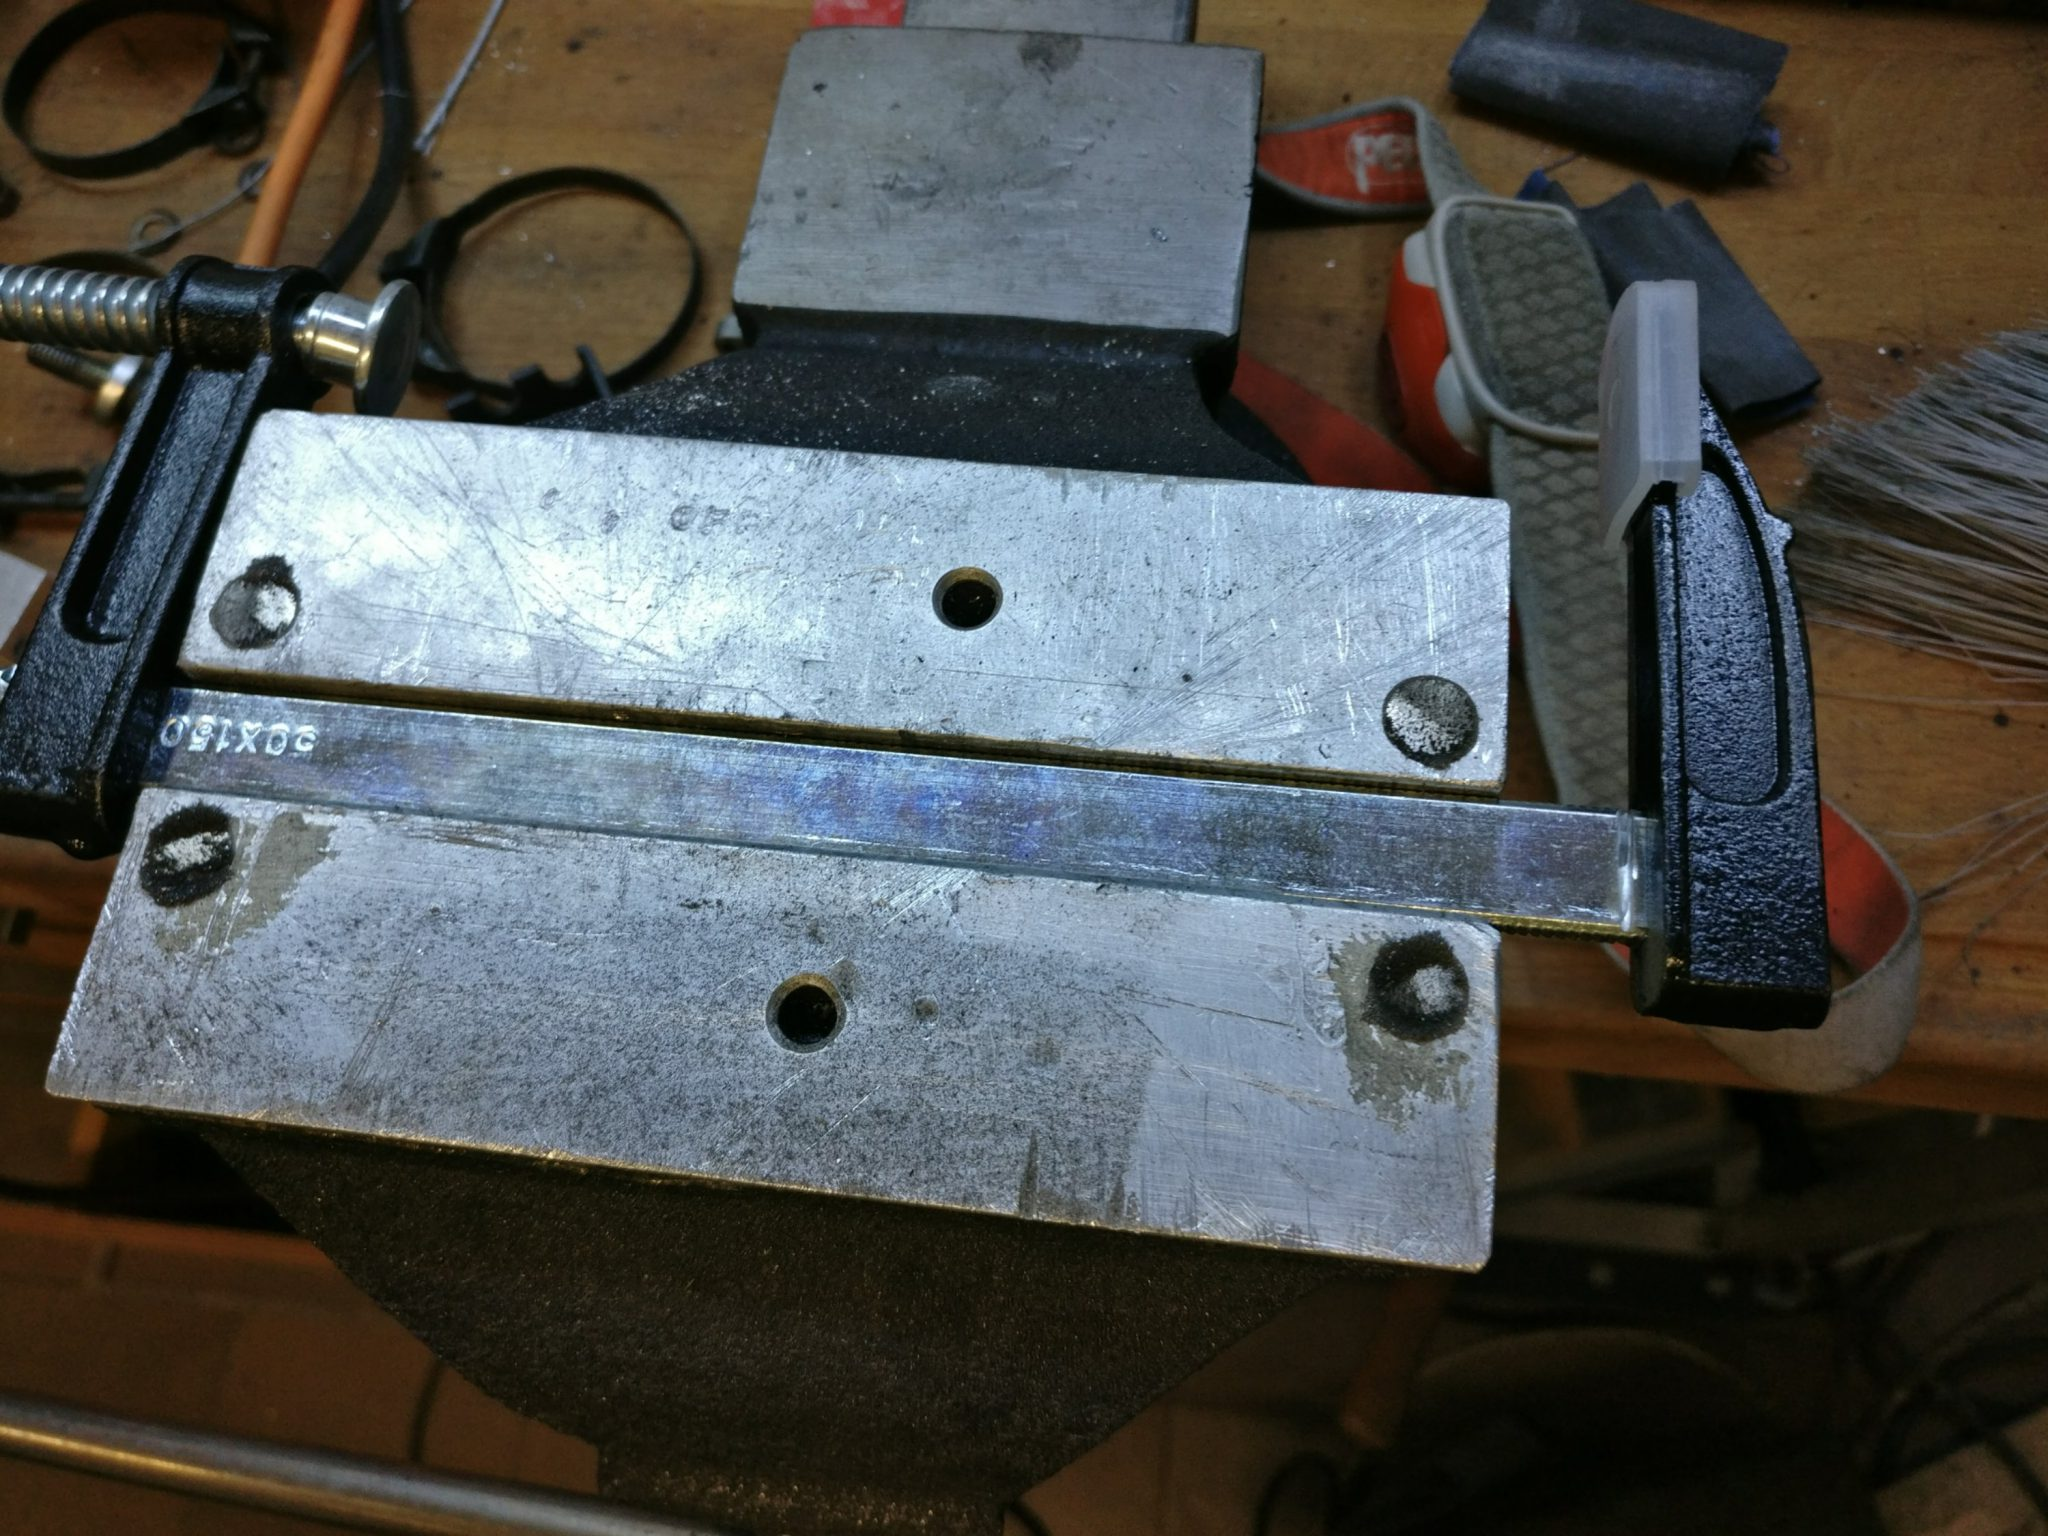 Cheap clamp, the right part gonna be cut off